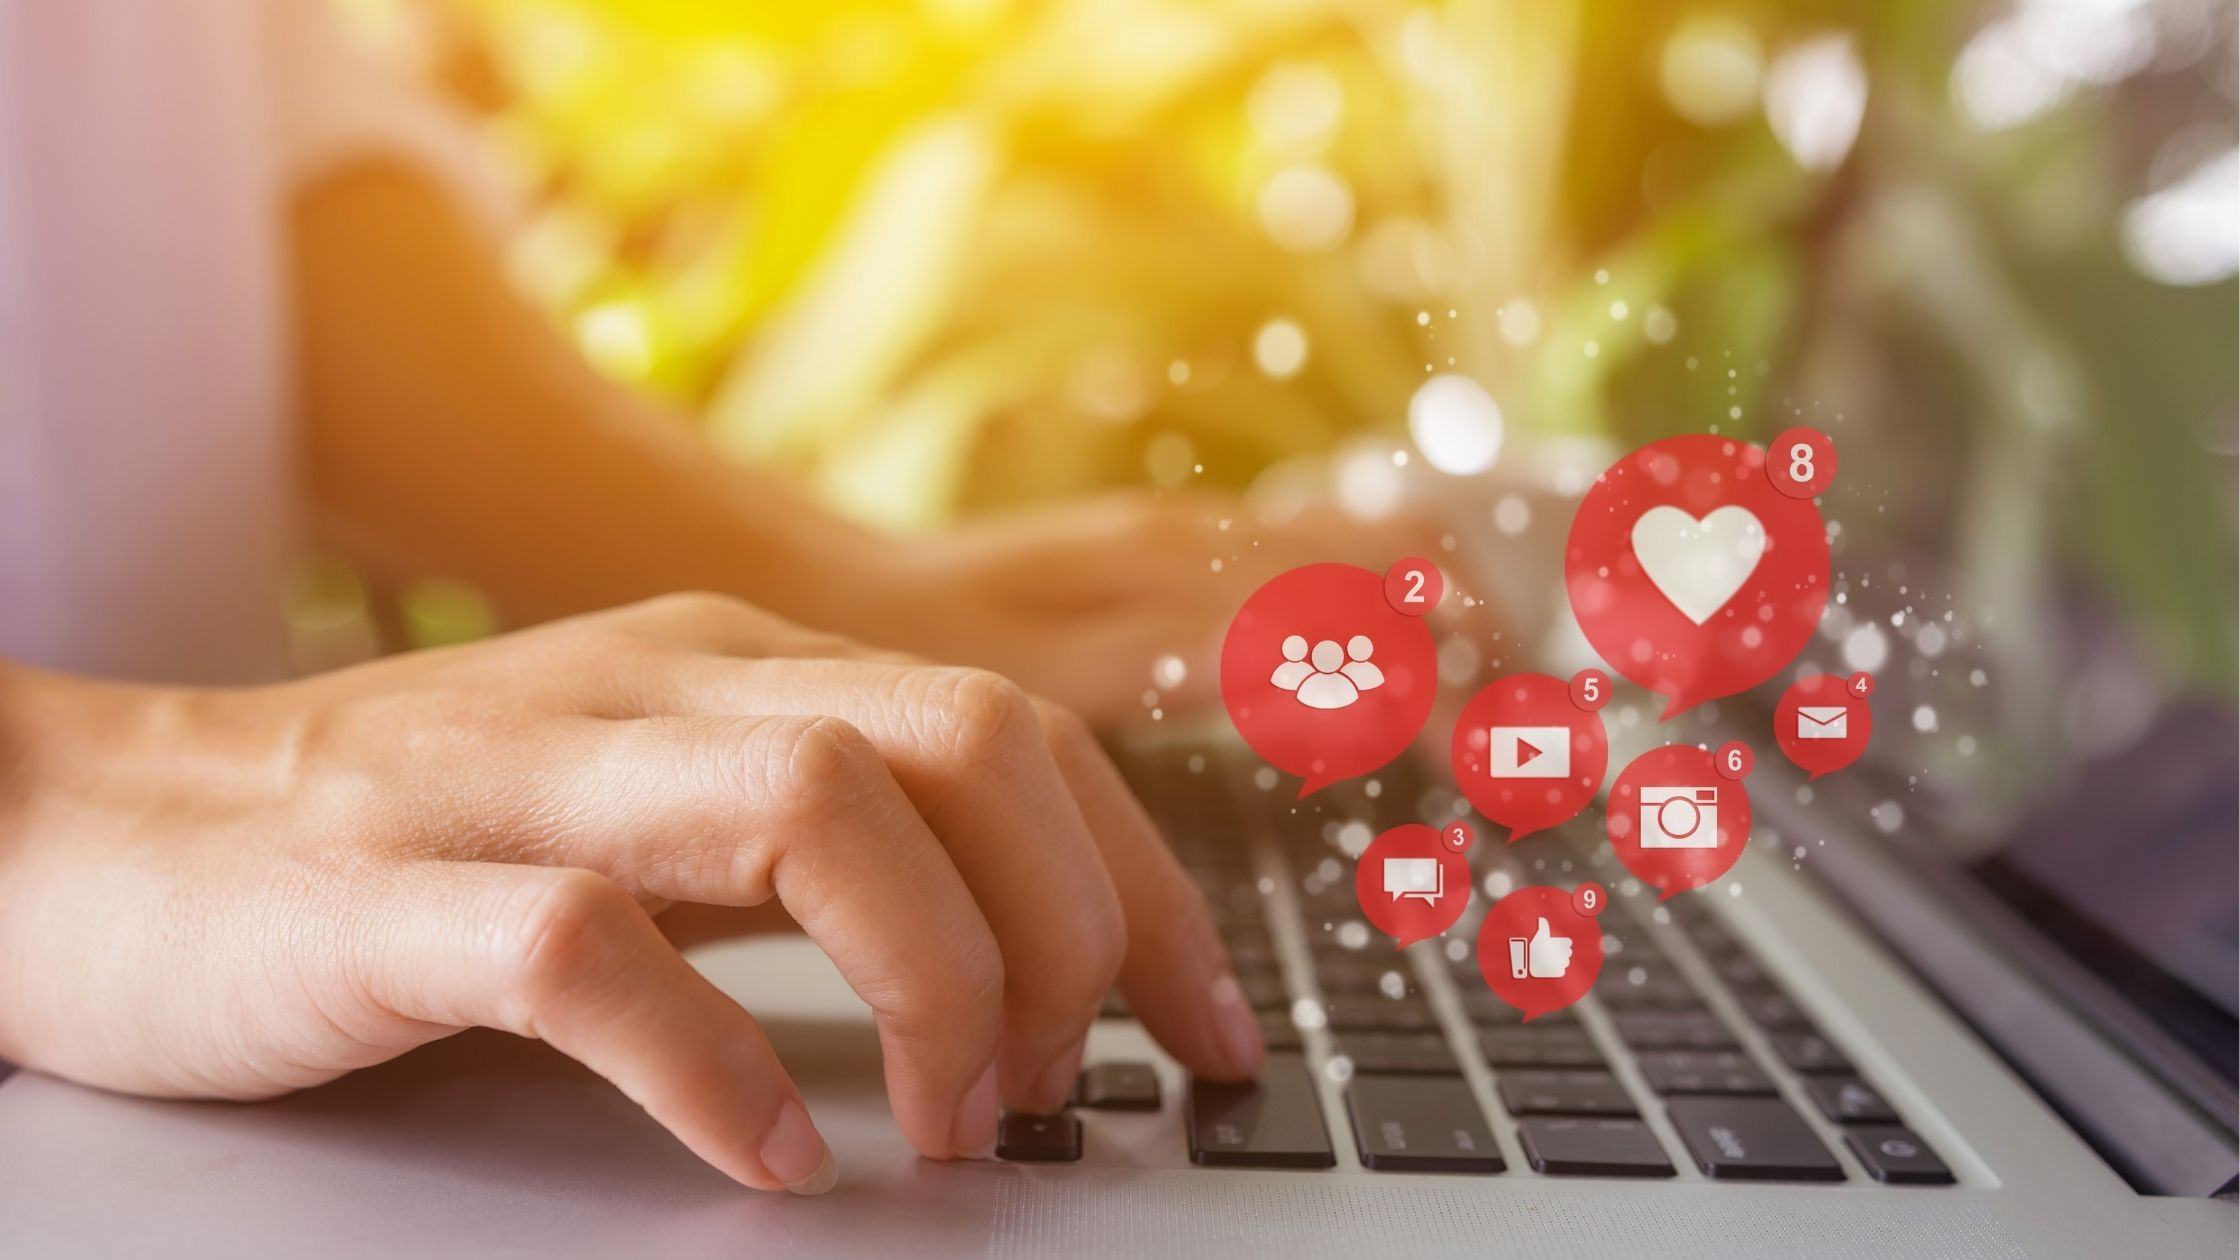 the power of social messaging image shows a pair of hands working on a a laptop pressing several fingers on the keyboard with a blurry background with plants. There are social messaging icons in red such as group, heart, like, play, picture, email and chat box.